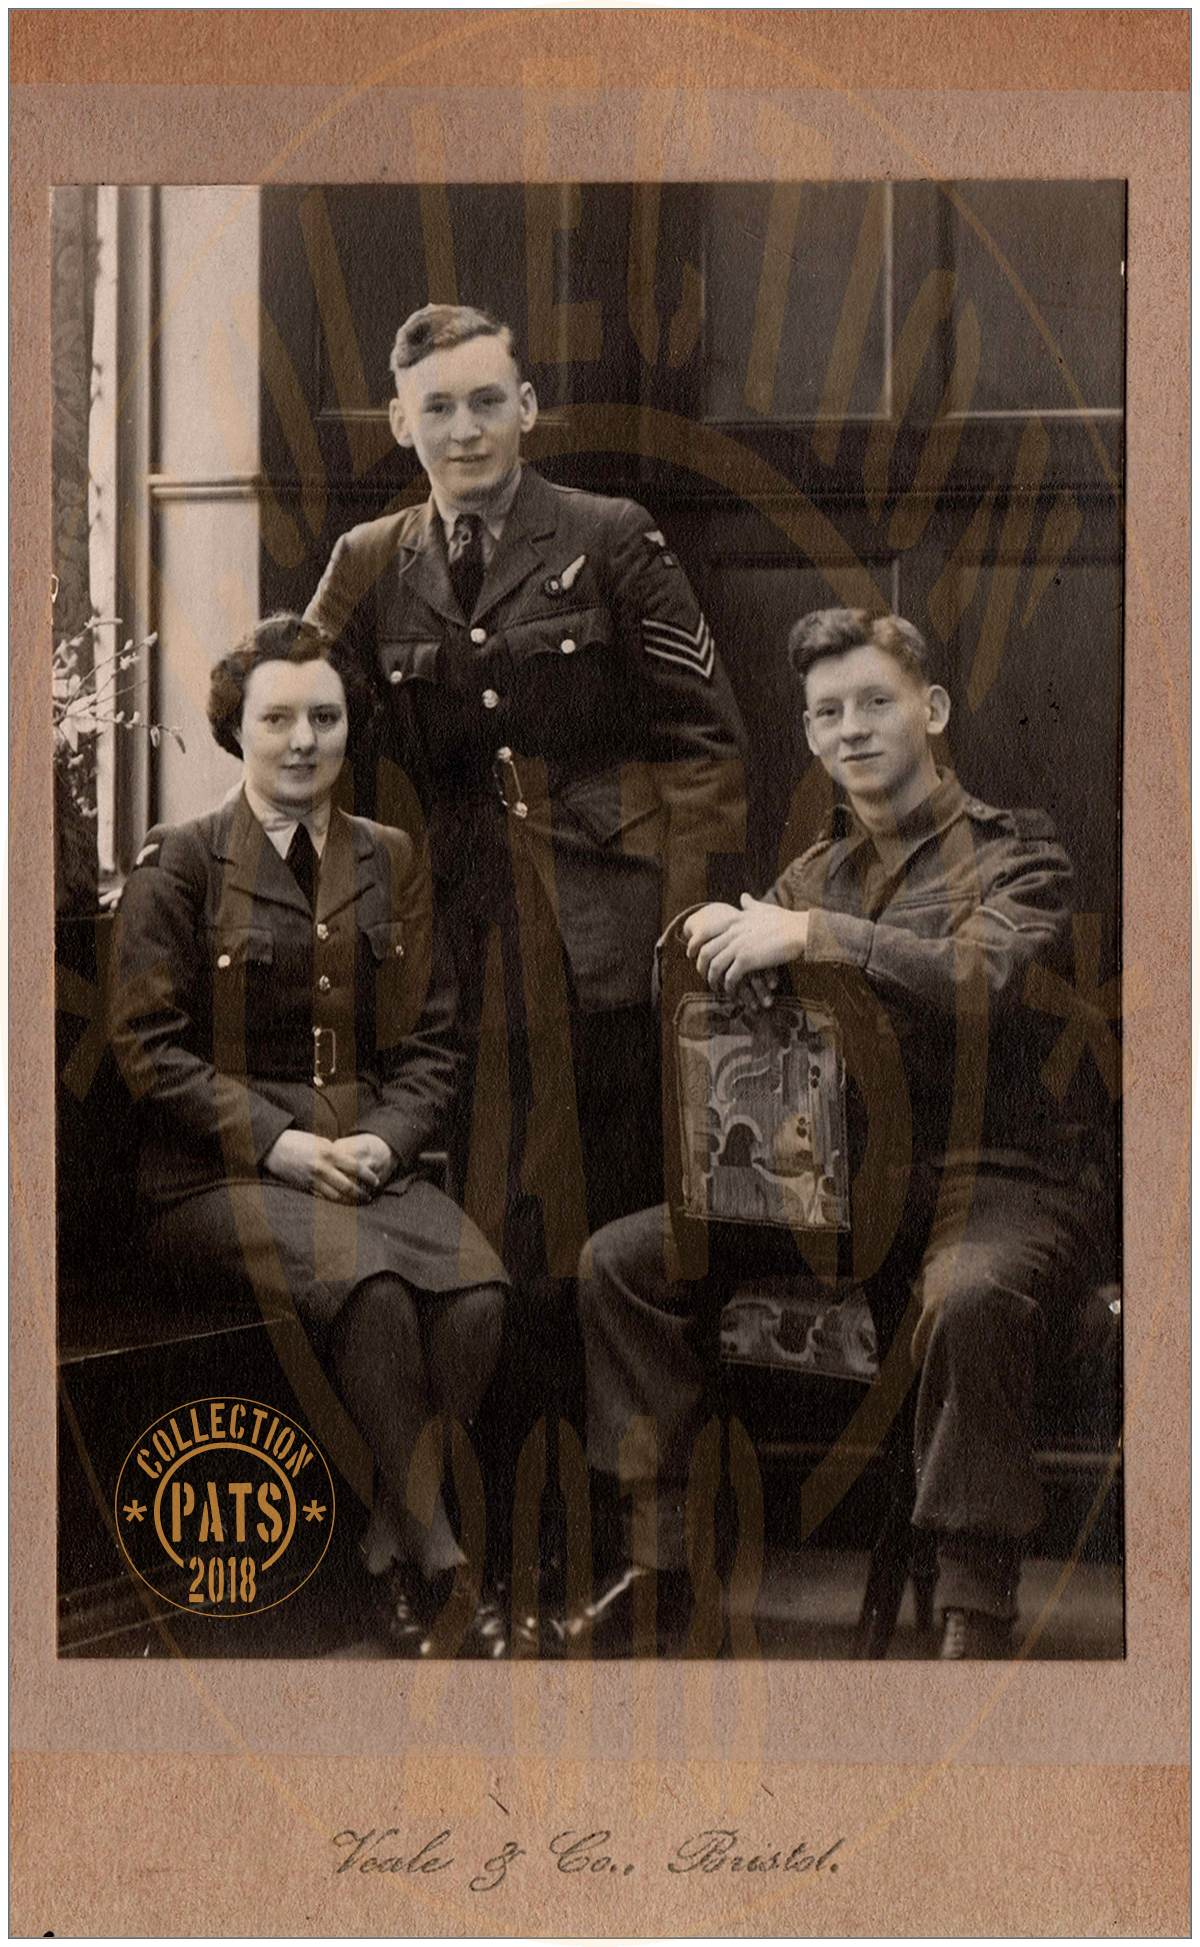 Joan (~24), Jack (~19) and George Manley (~16) - 1943